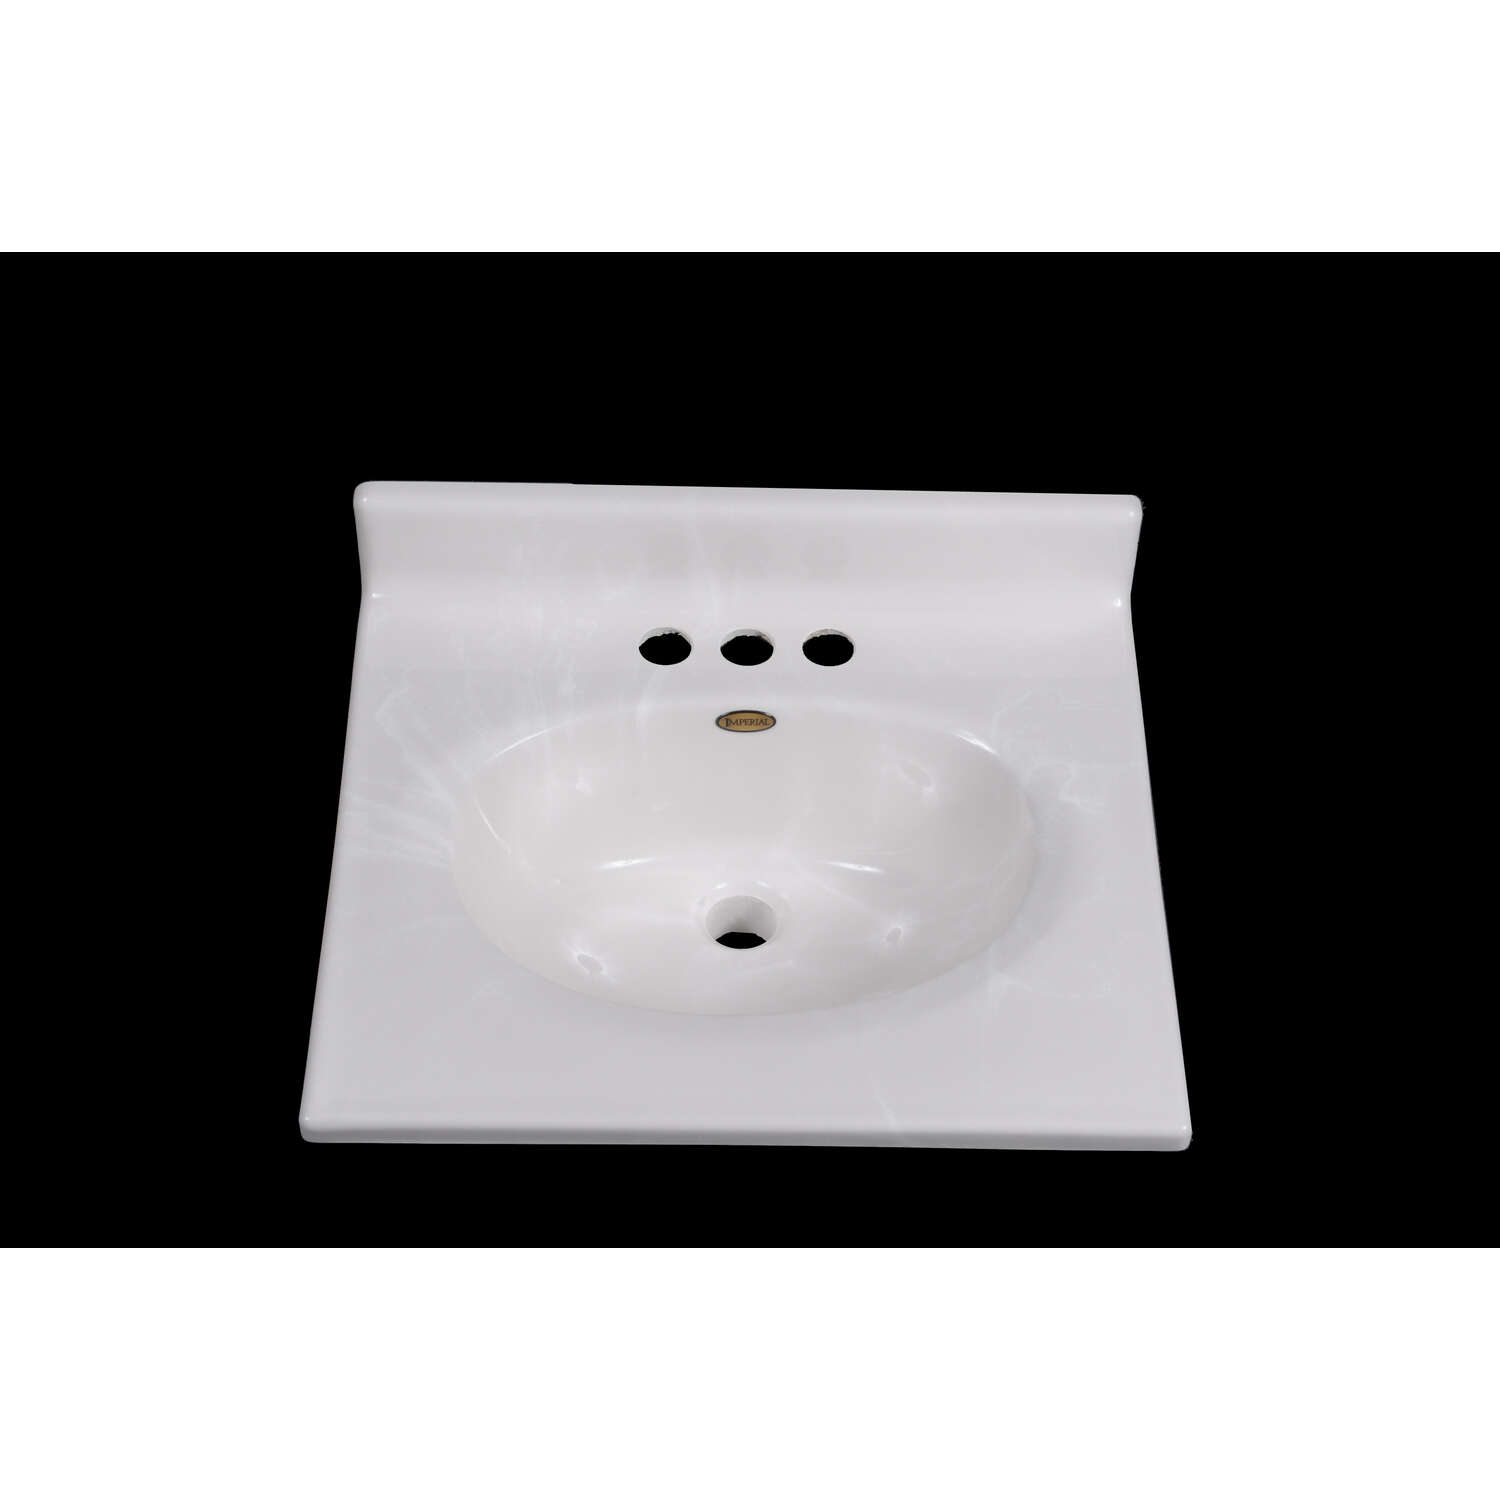 Imperial Marble Vanity Top Cultured Marble Single Bowl 19-1/2 in. x 17 in. White